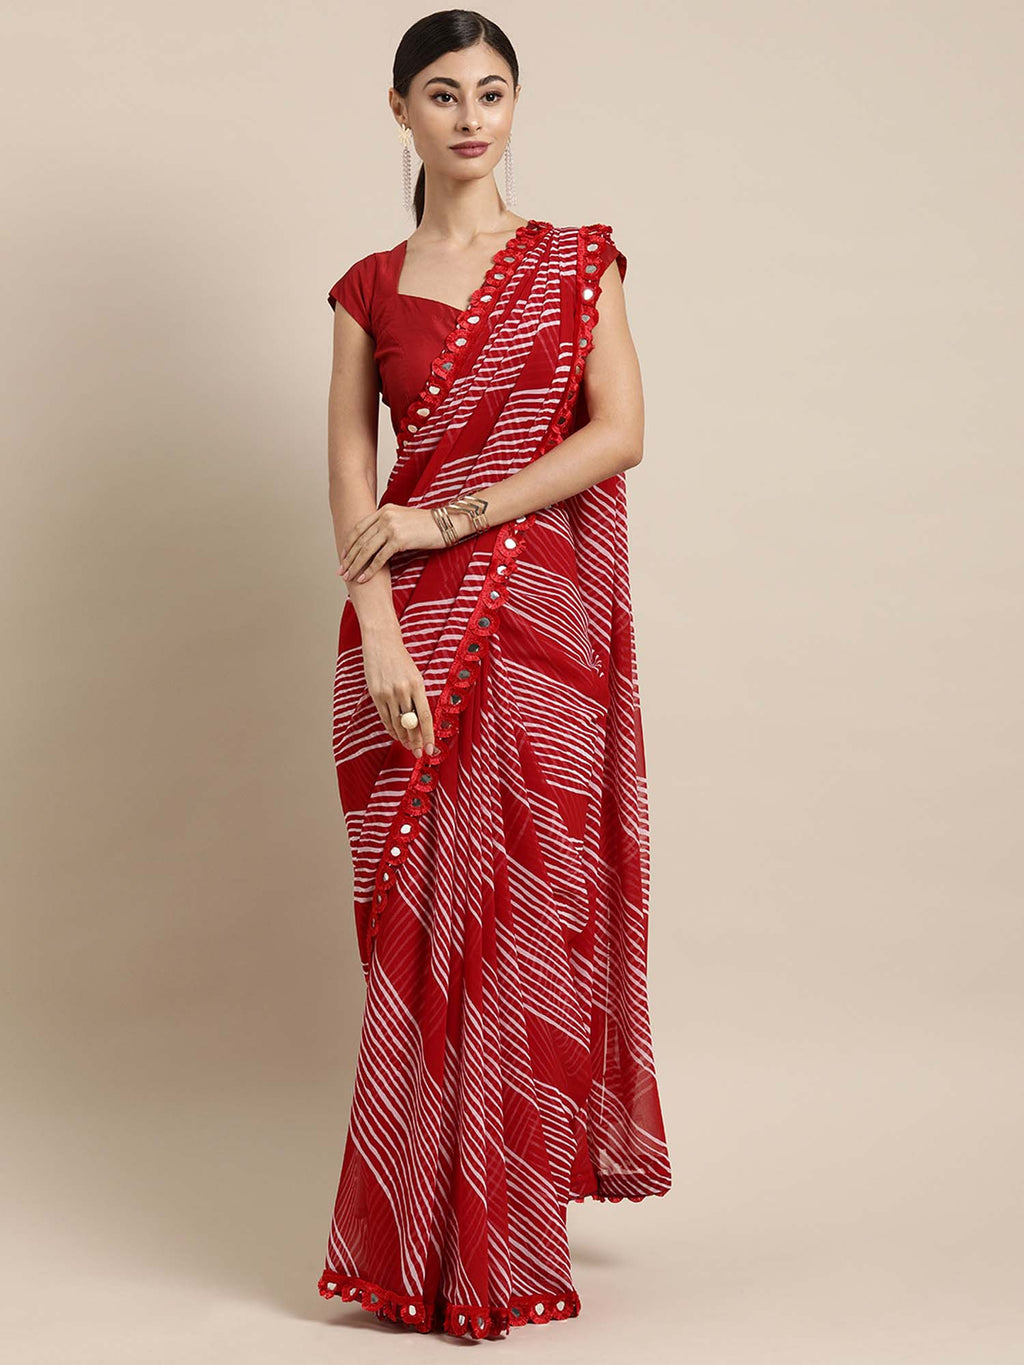 Red and White Leheriya Poly Georgette Saree With Mirror Work Lace - Riviera Closet